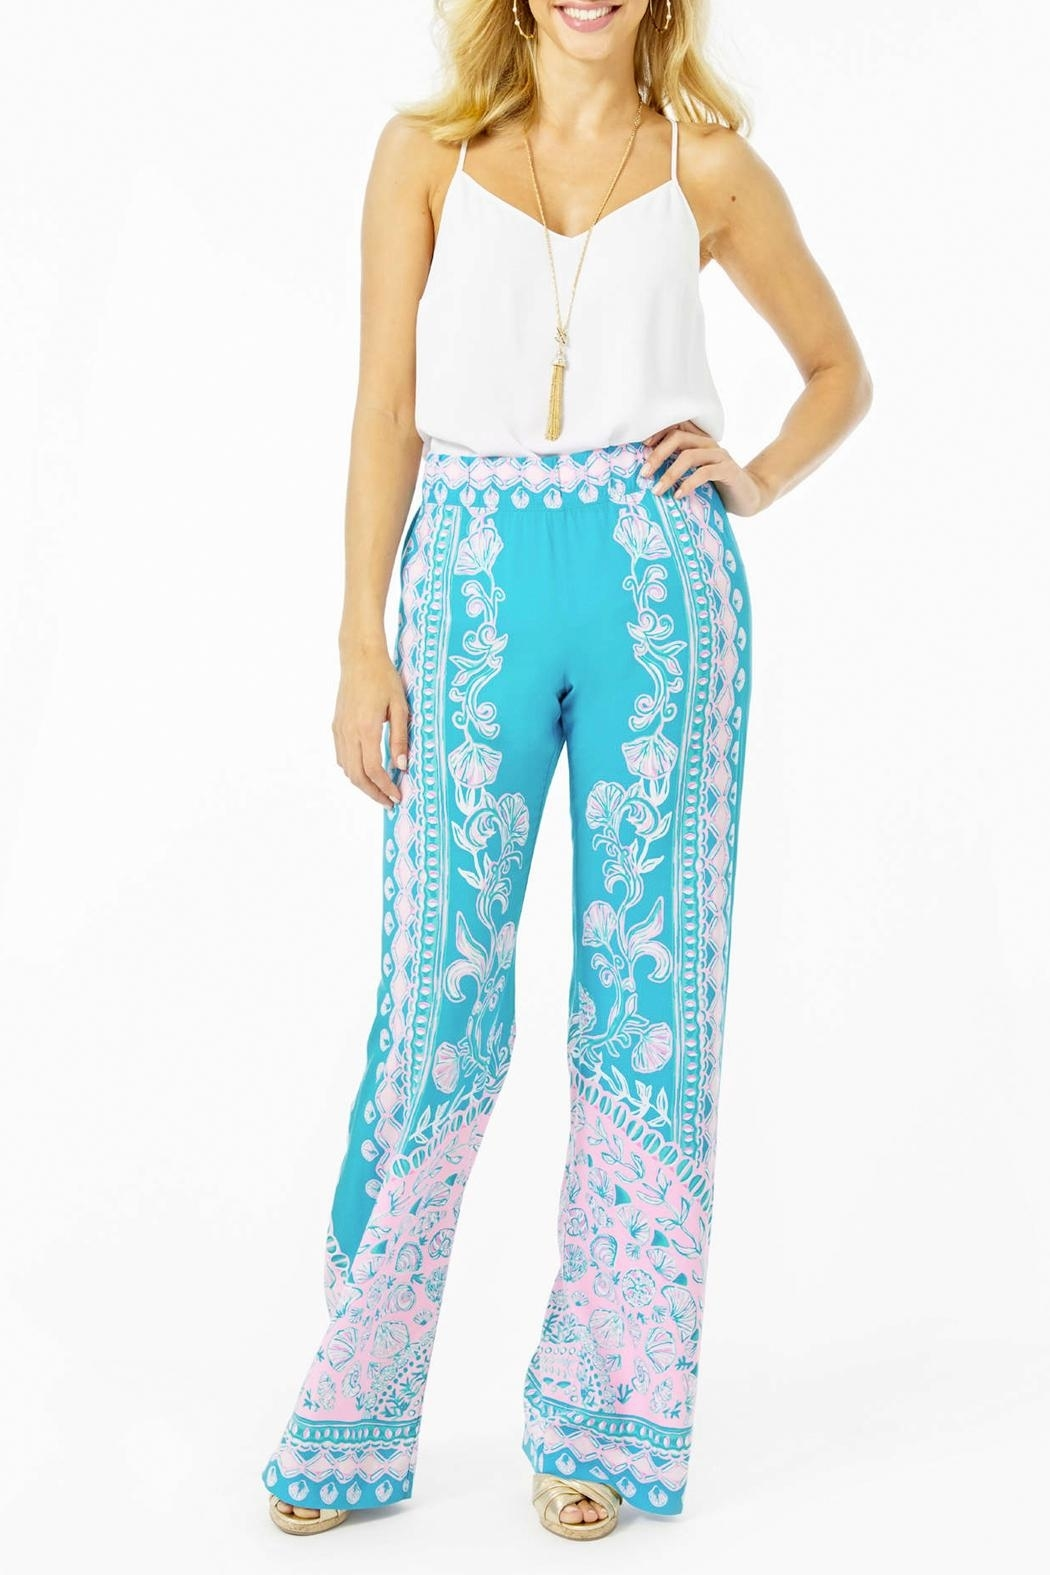 Lilly Pulitzer Bal-Harbour Mid-Rise Palazzo-Pant - Back Cropped Image